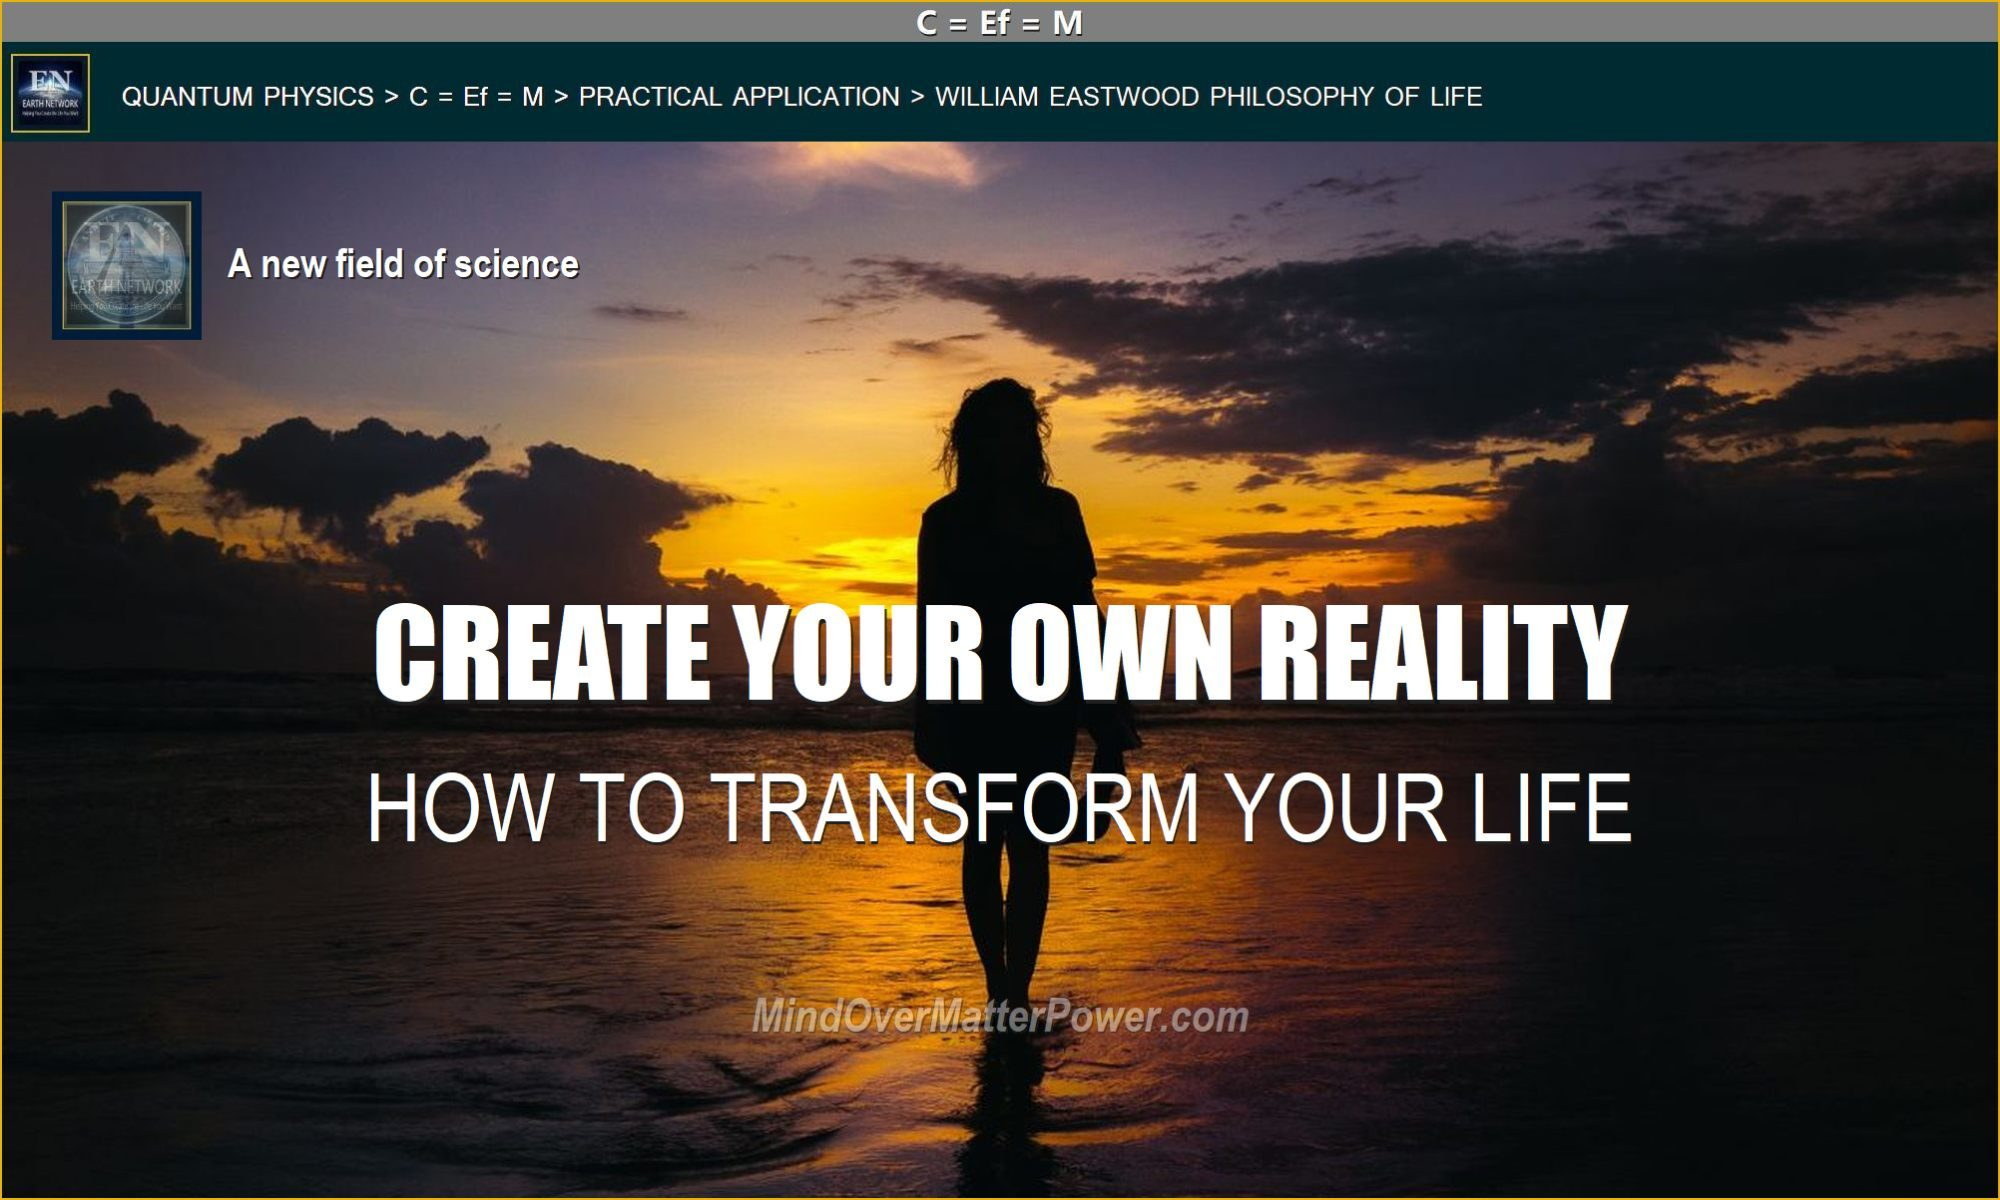 Woman on beach depicts you-can-create-your-own-reality-manifeting-metaphysics-how-to-transform-you-life-reality